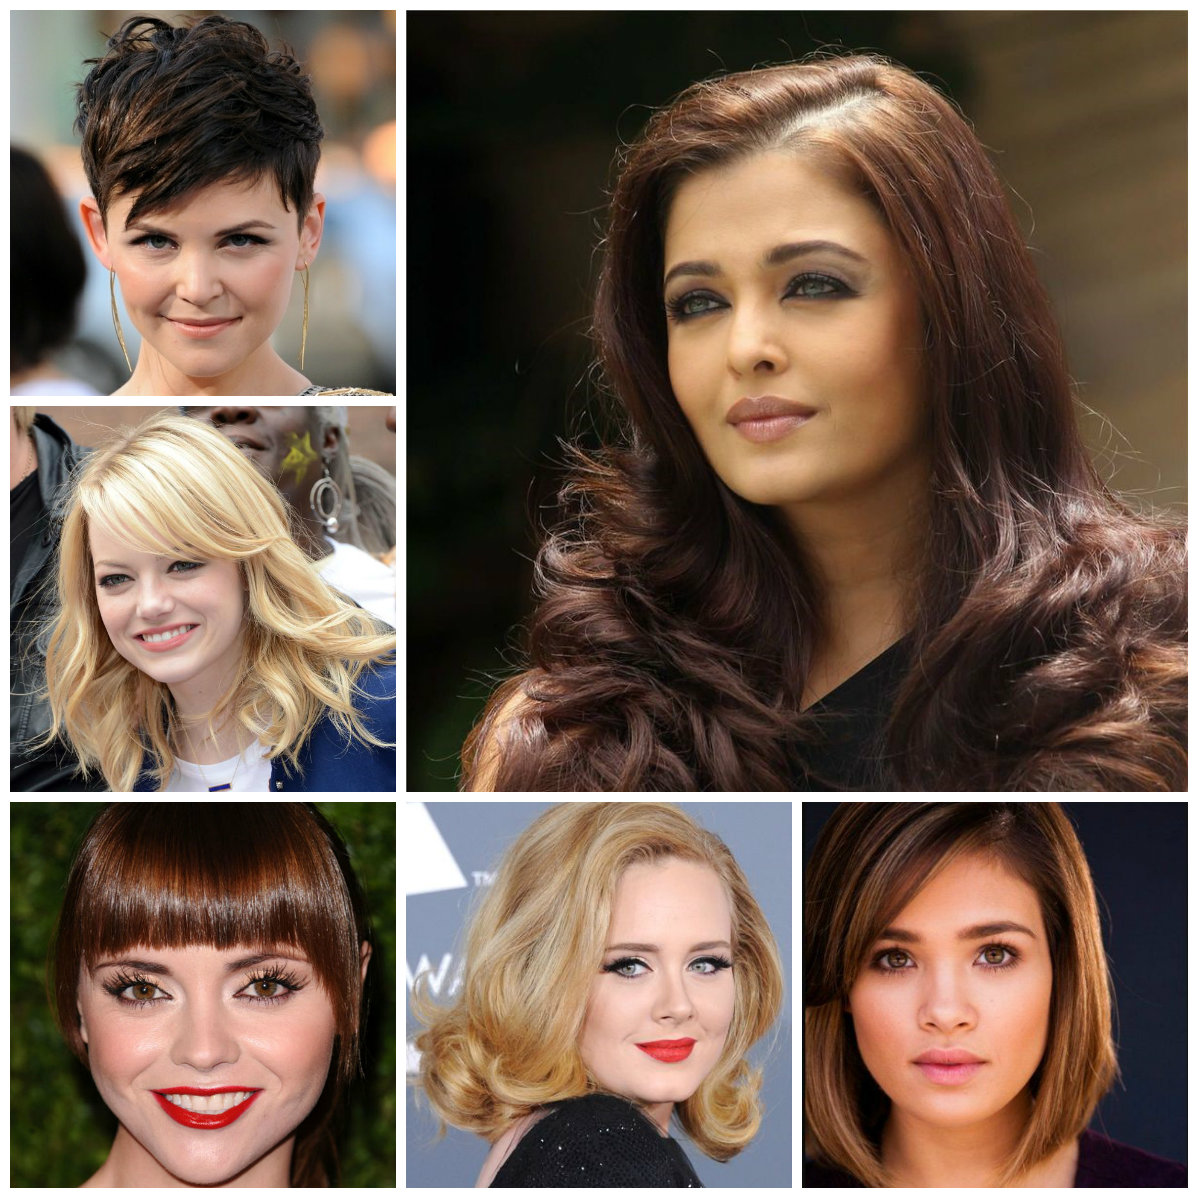 hairstyles for round faces 2022